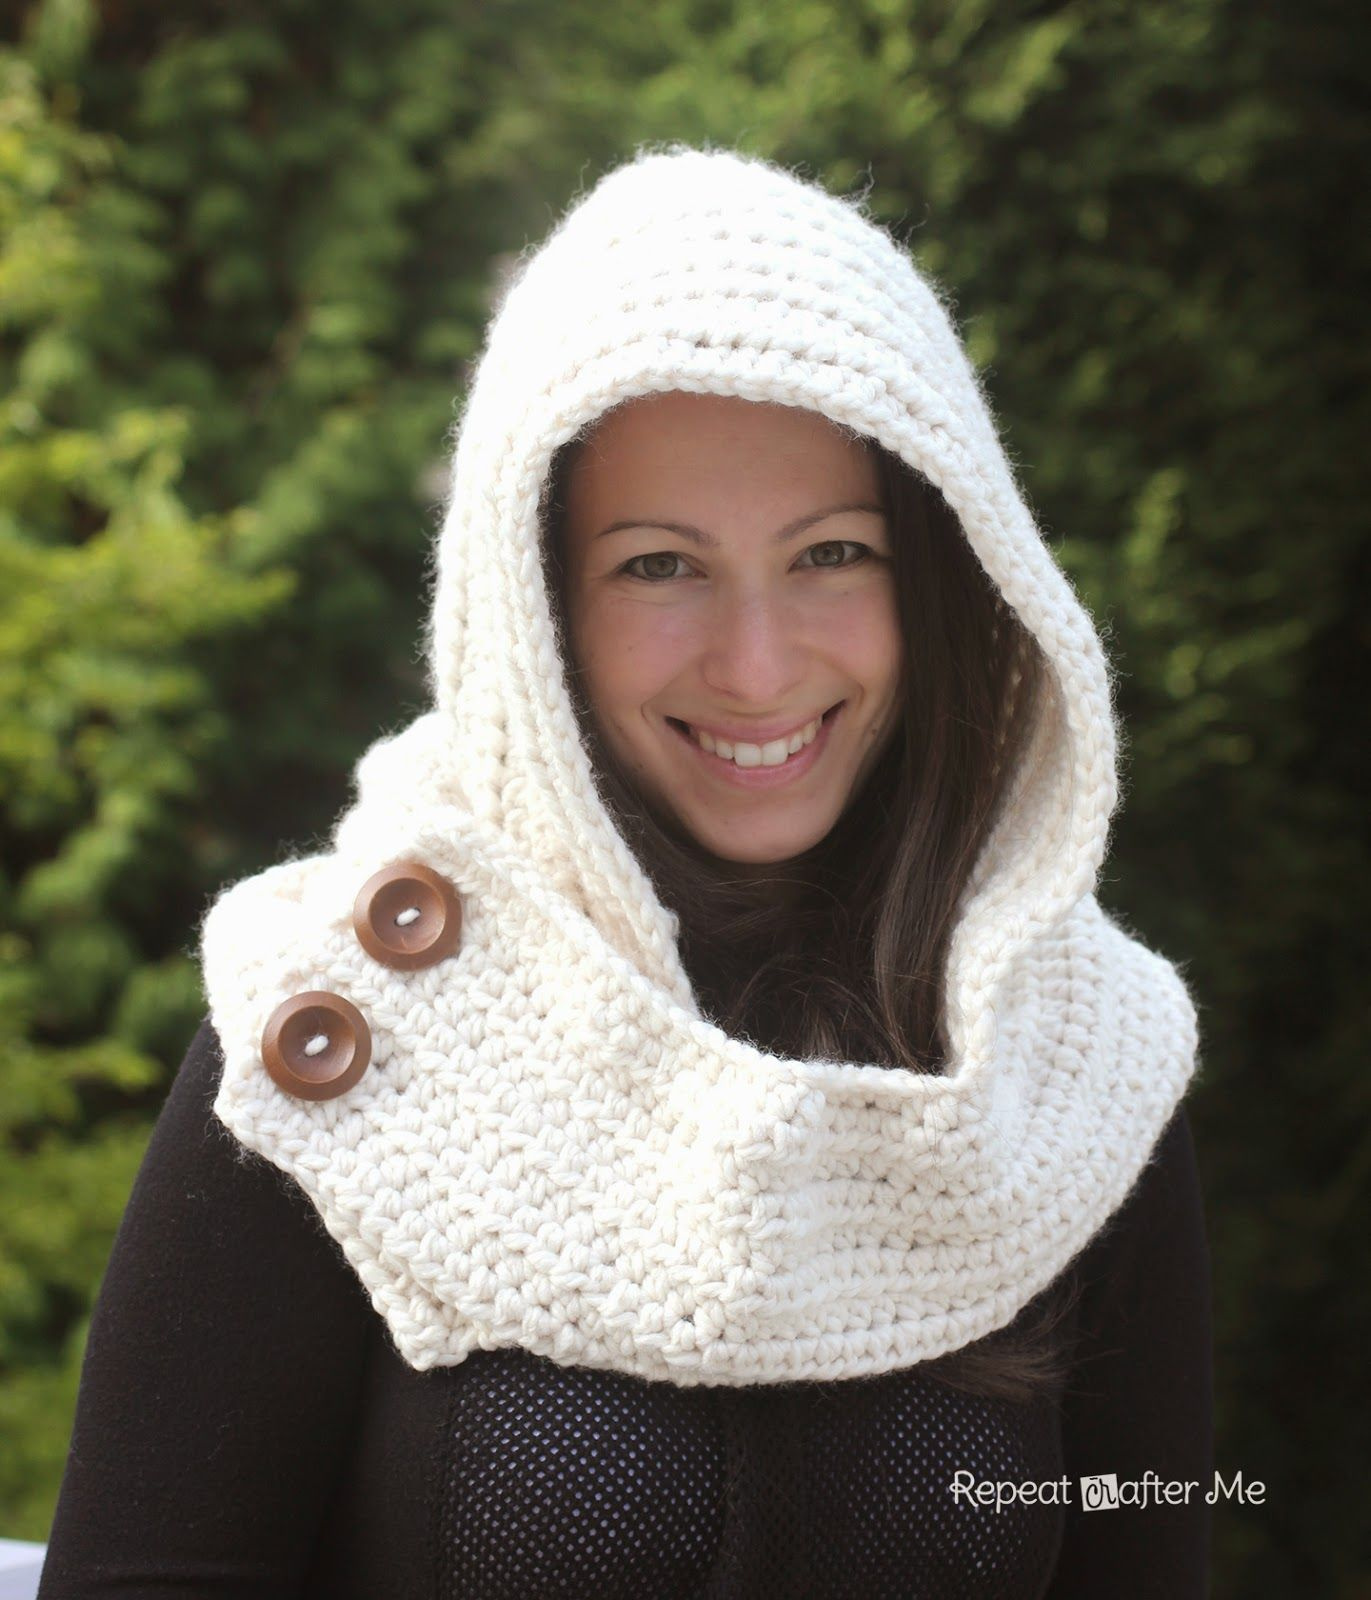 Repeat crafter me hooded crochet cowl with lion brand thick repeat crafter me hooded crochet cowl with lion brand thick quick yarn scarfie bankloansurffo Images